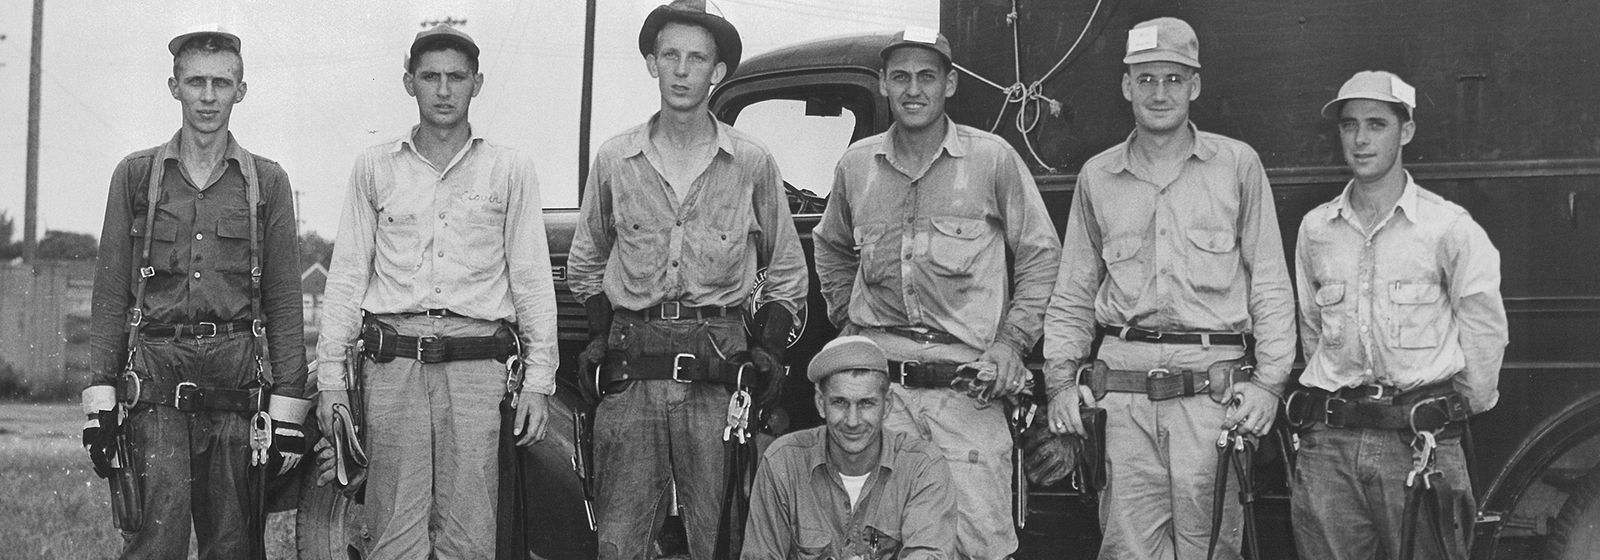 Retro photos: The first lineworkers